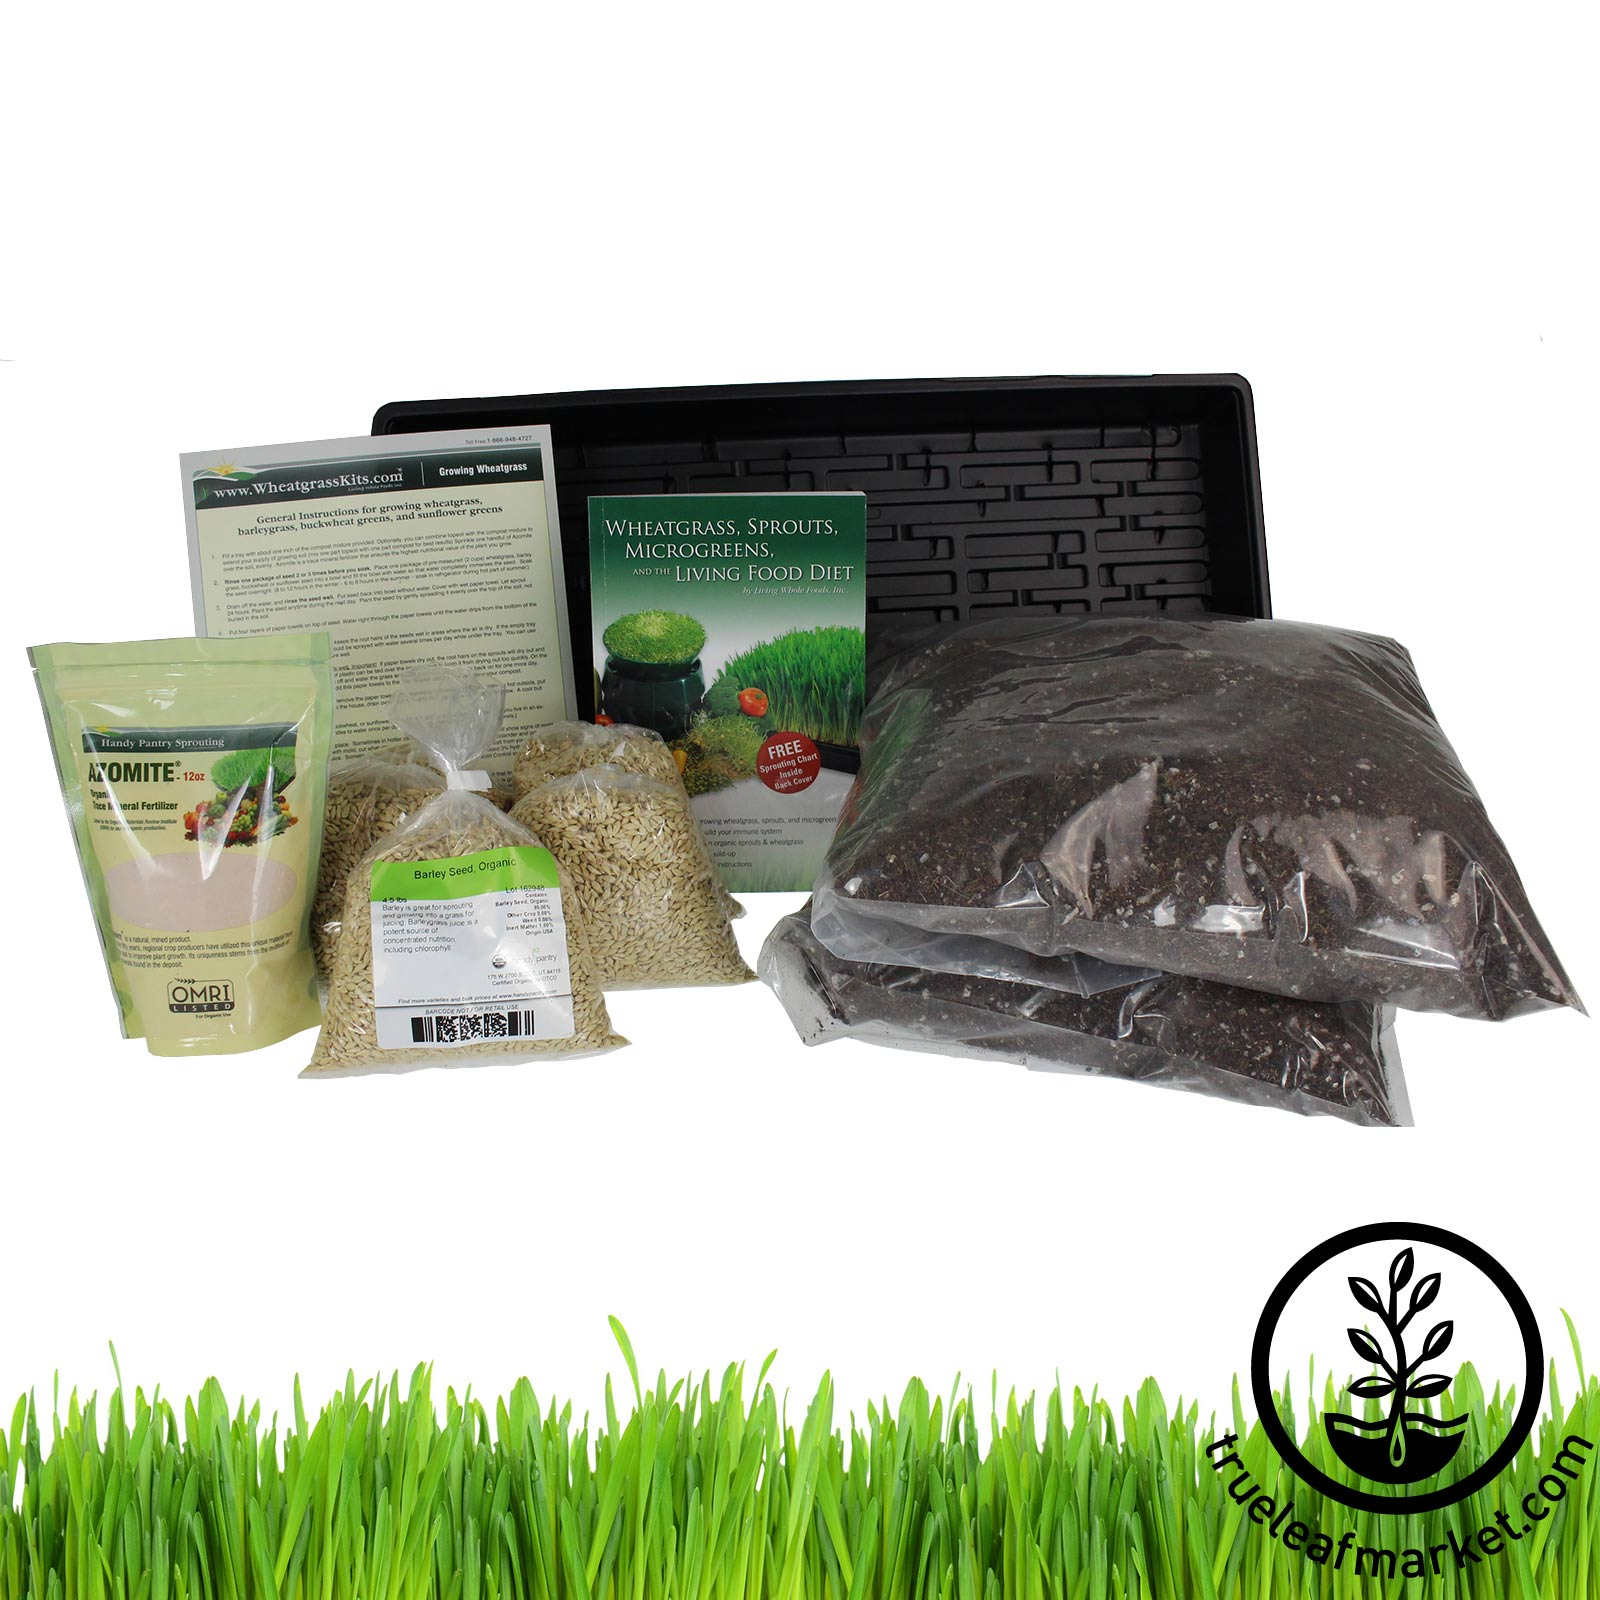 The Barleygrass Growing Kit - Grow Barley Grass barley grass, barley green, barley juice, barley seed